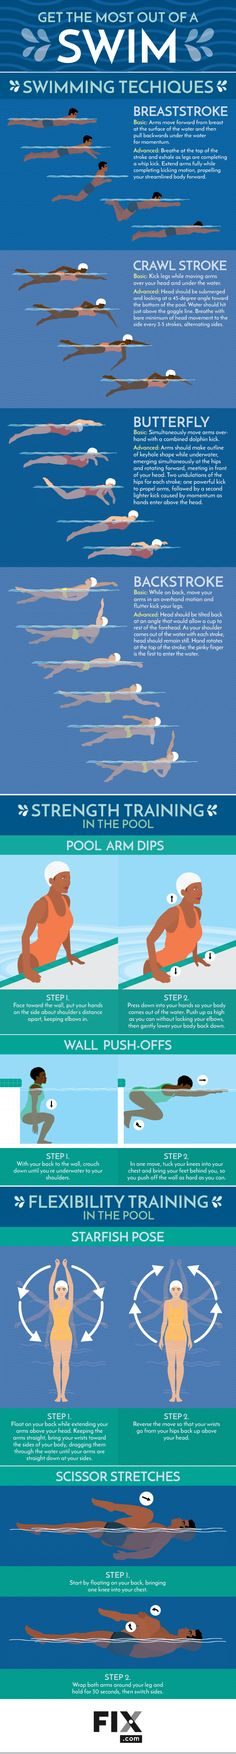 Splish and splash your way into a healthier life by learning why water workouts are one of the best ways to get a full-body workout!